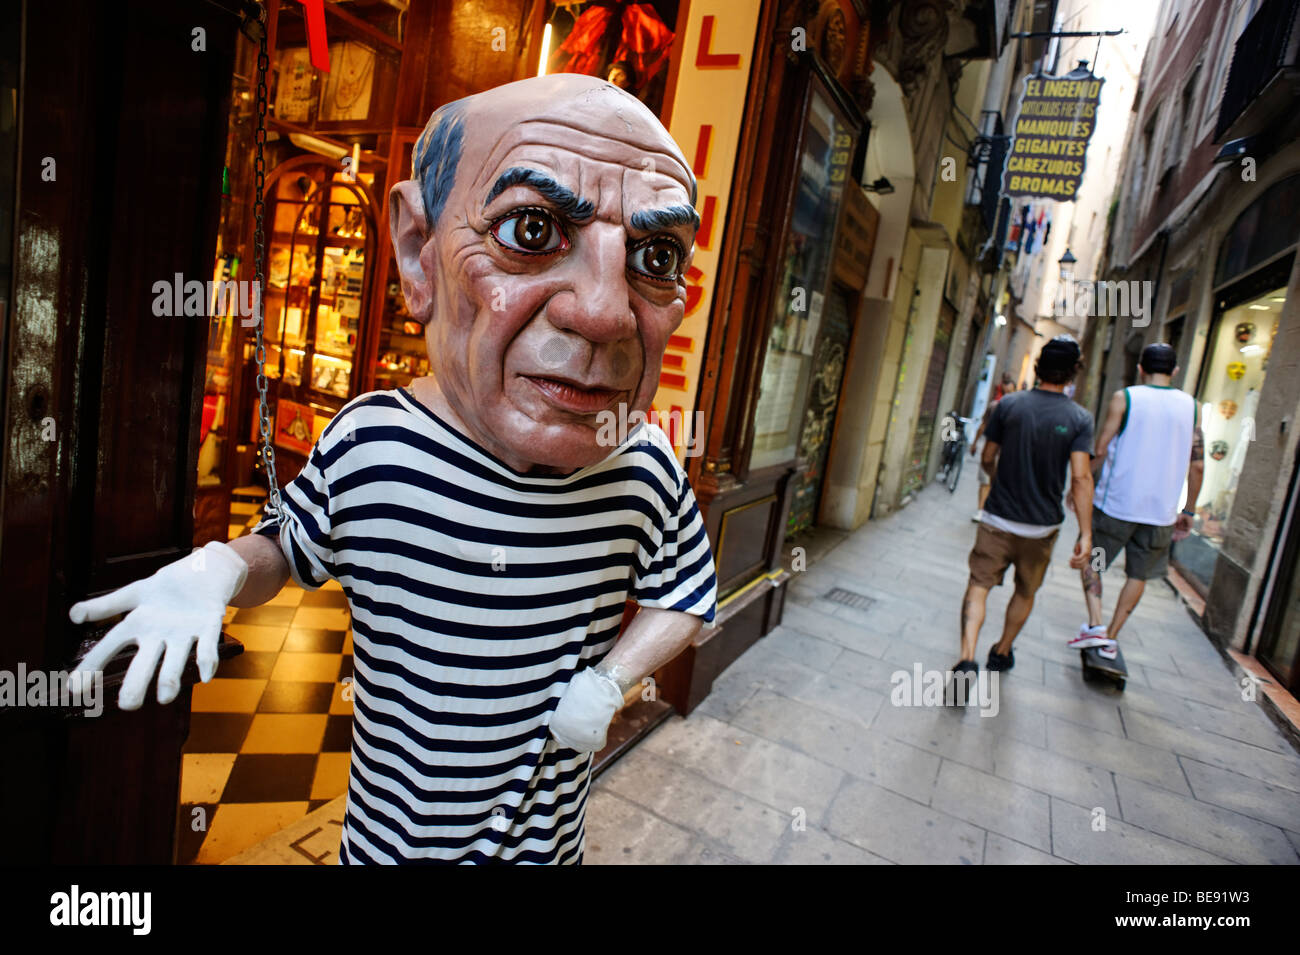 Pablo Picasso mannequin outside jugglers store. Barri Gotic. Barcelona. Spain - Stock Image